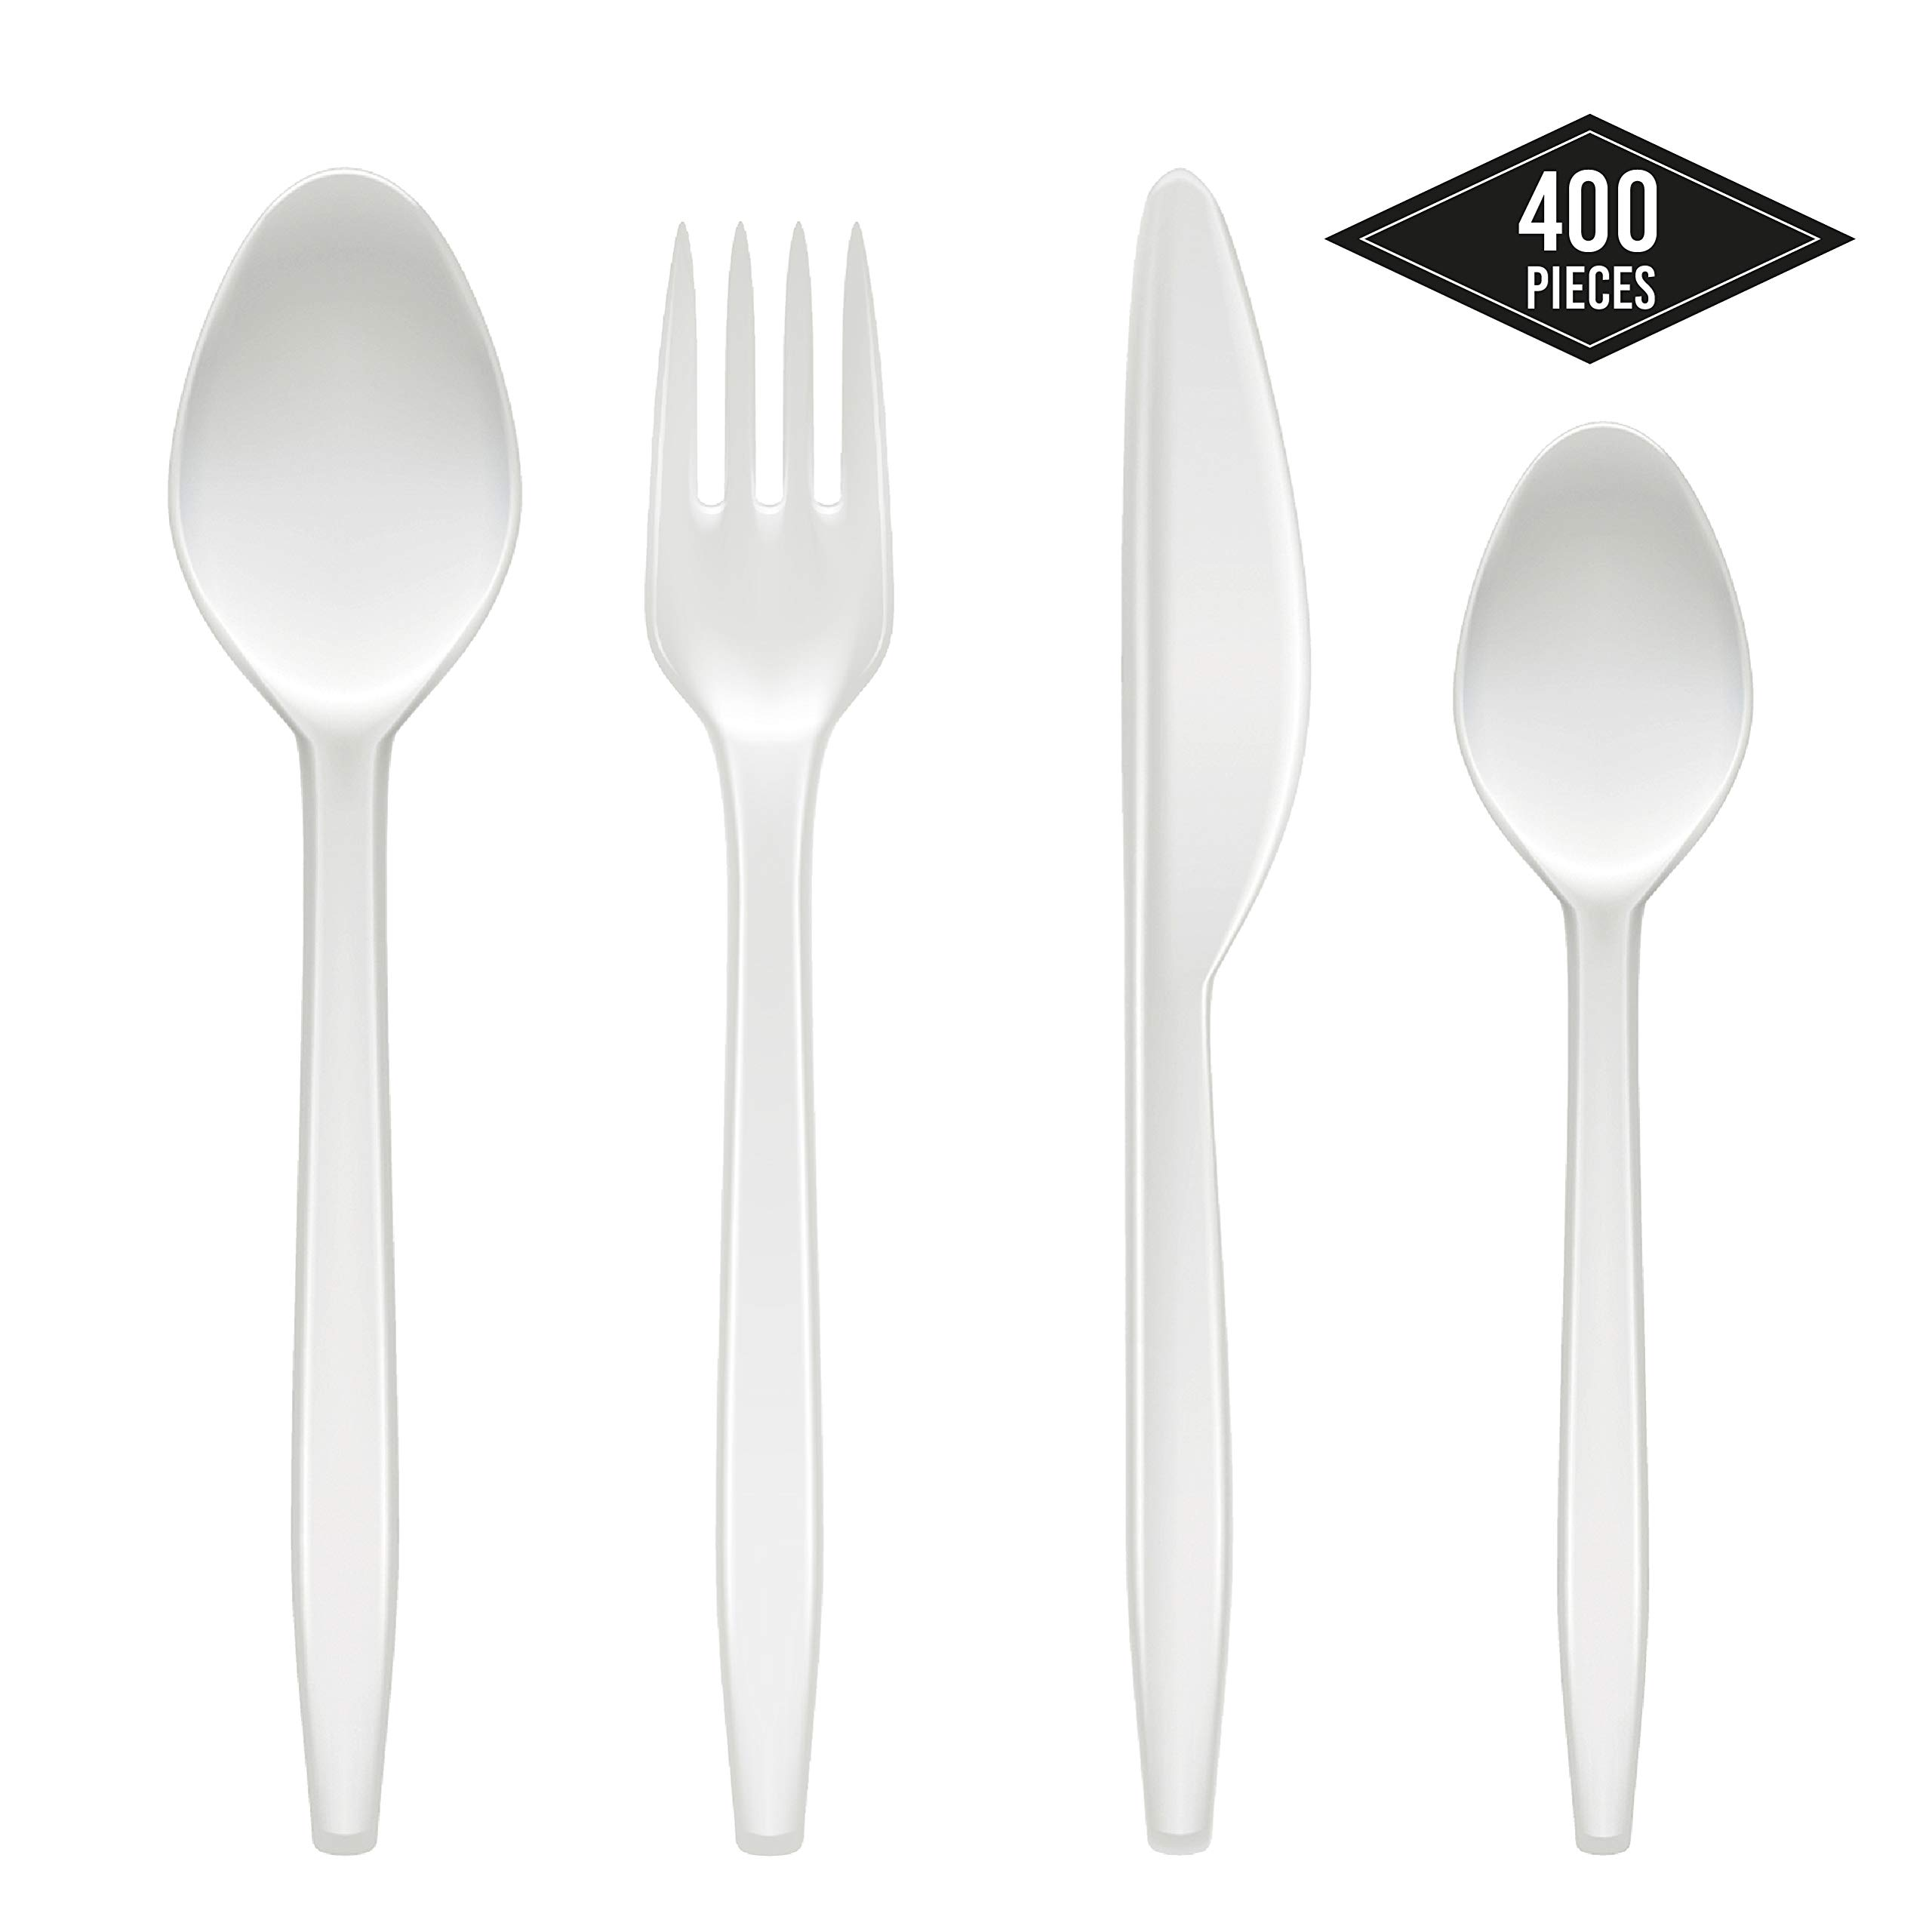 Clear Plastic Heavy Duty Cutlery Forks Spoons Knives XMAS Party